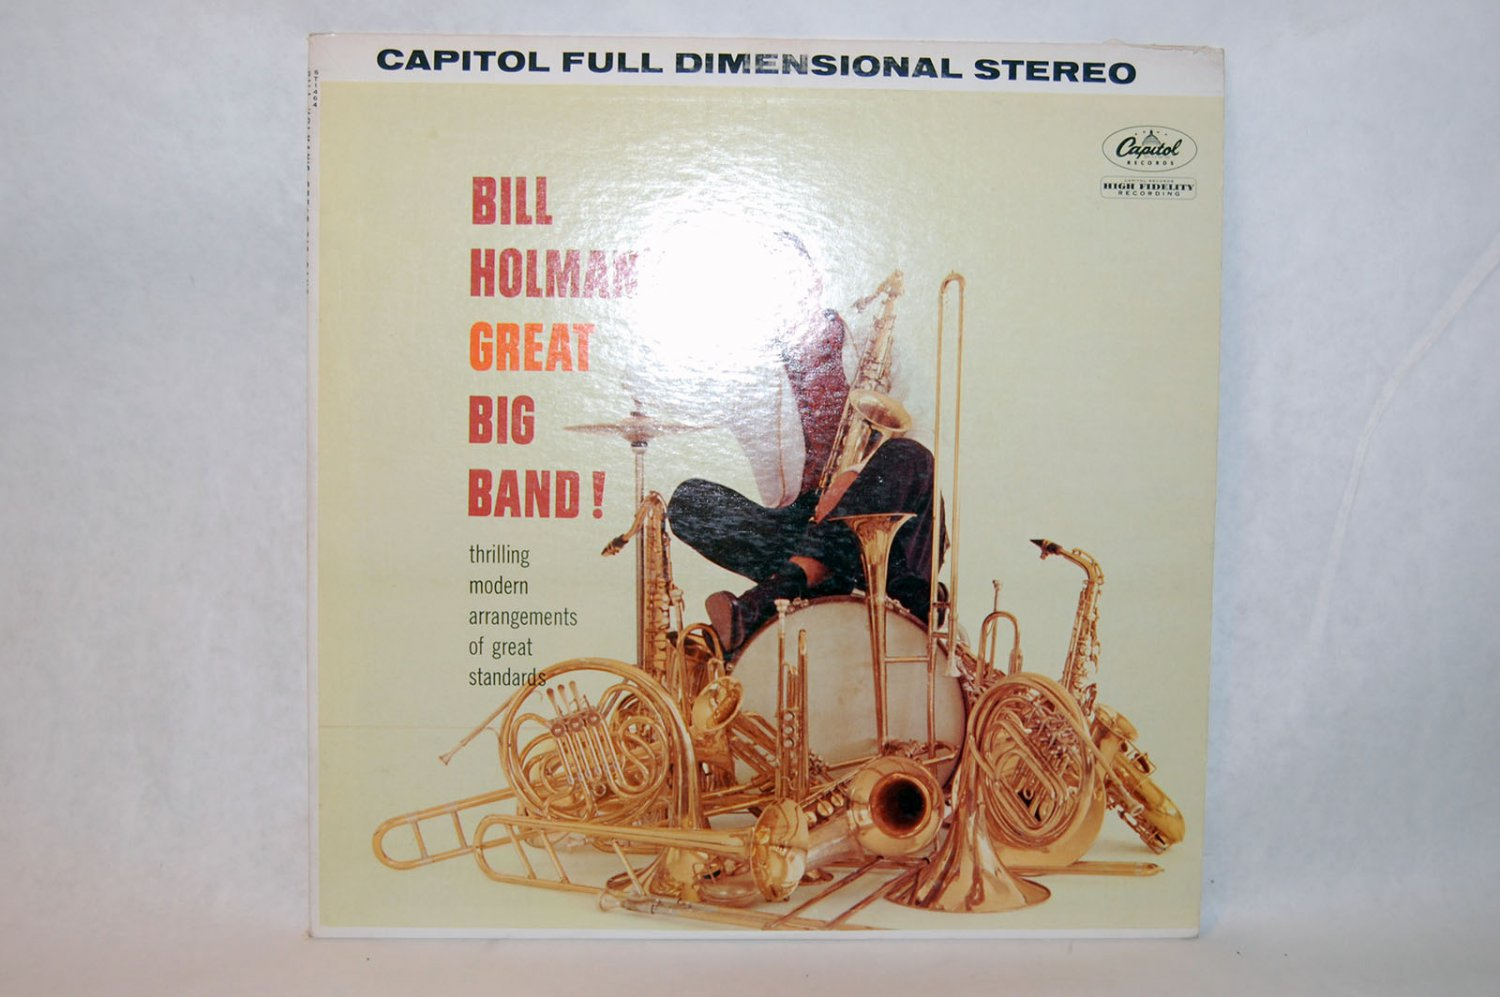 "BILL HOLMAN'S GREAT BIG BAND! 12"" Vinyl LP Captol"